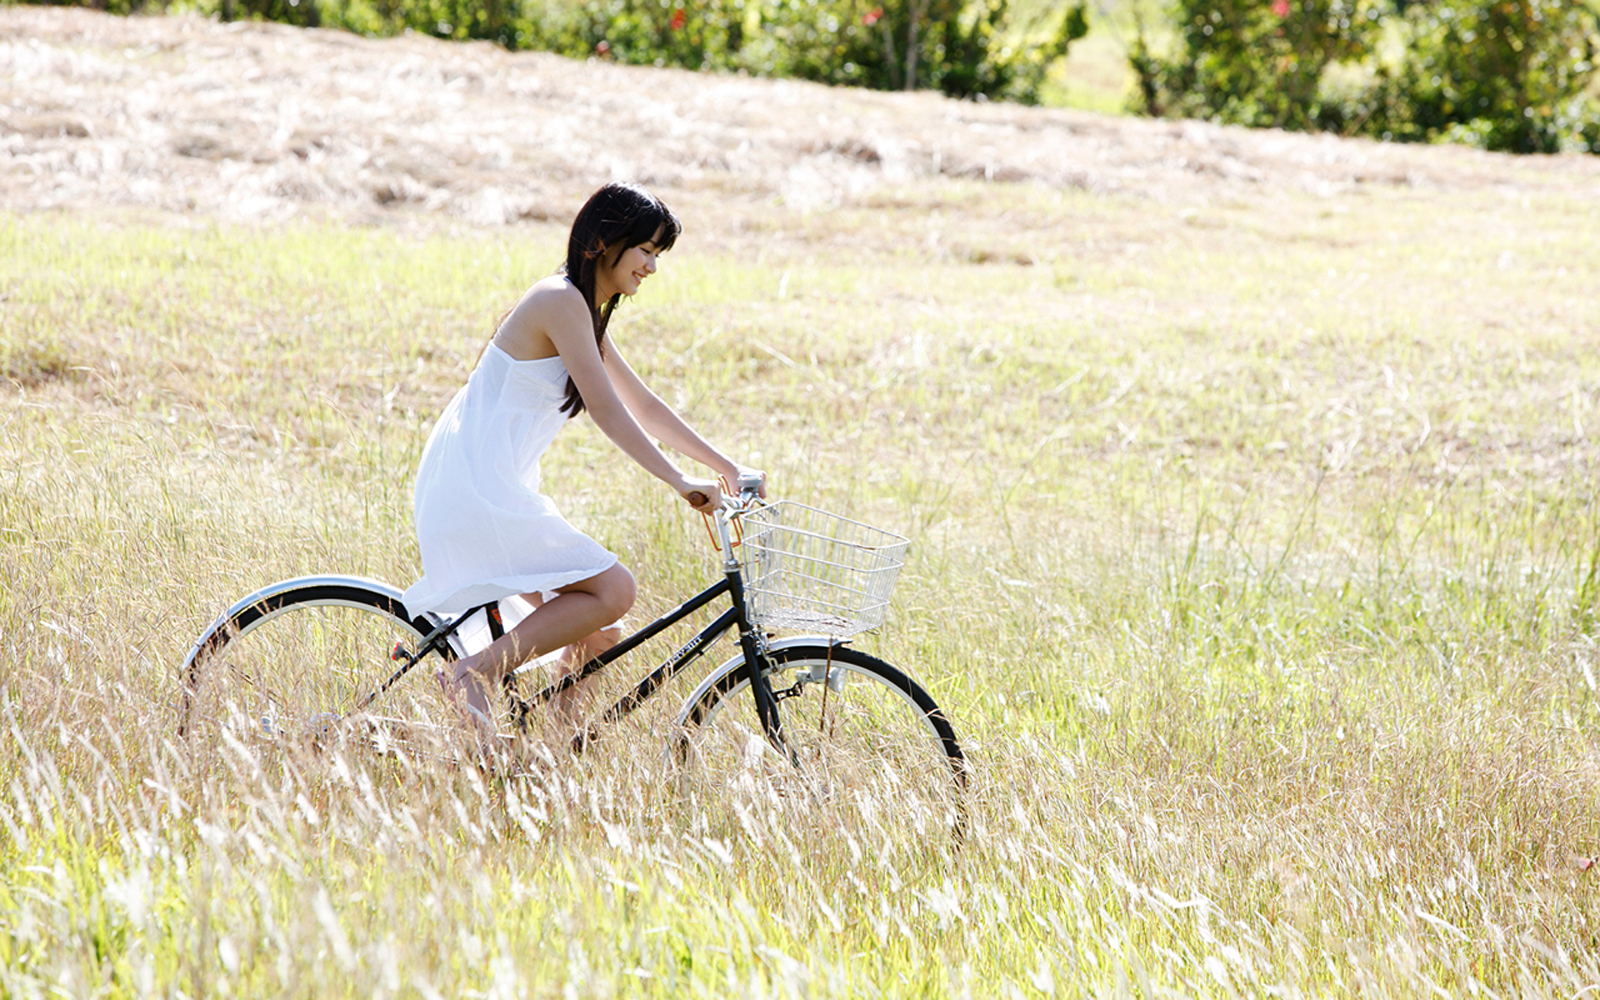 http://2.bp.blogspot.com/-IwhZ2HmBGeA/T4AnTgAzfqI/AAAAAAAABIk/7jihiUlPU54/s1600/Asian_Girl_With_Vintage_Bicycle_in_Field_HD_Wallpaper-Vvallpaper.Net.jpg